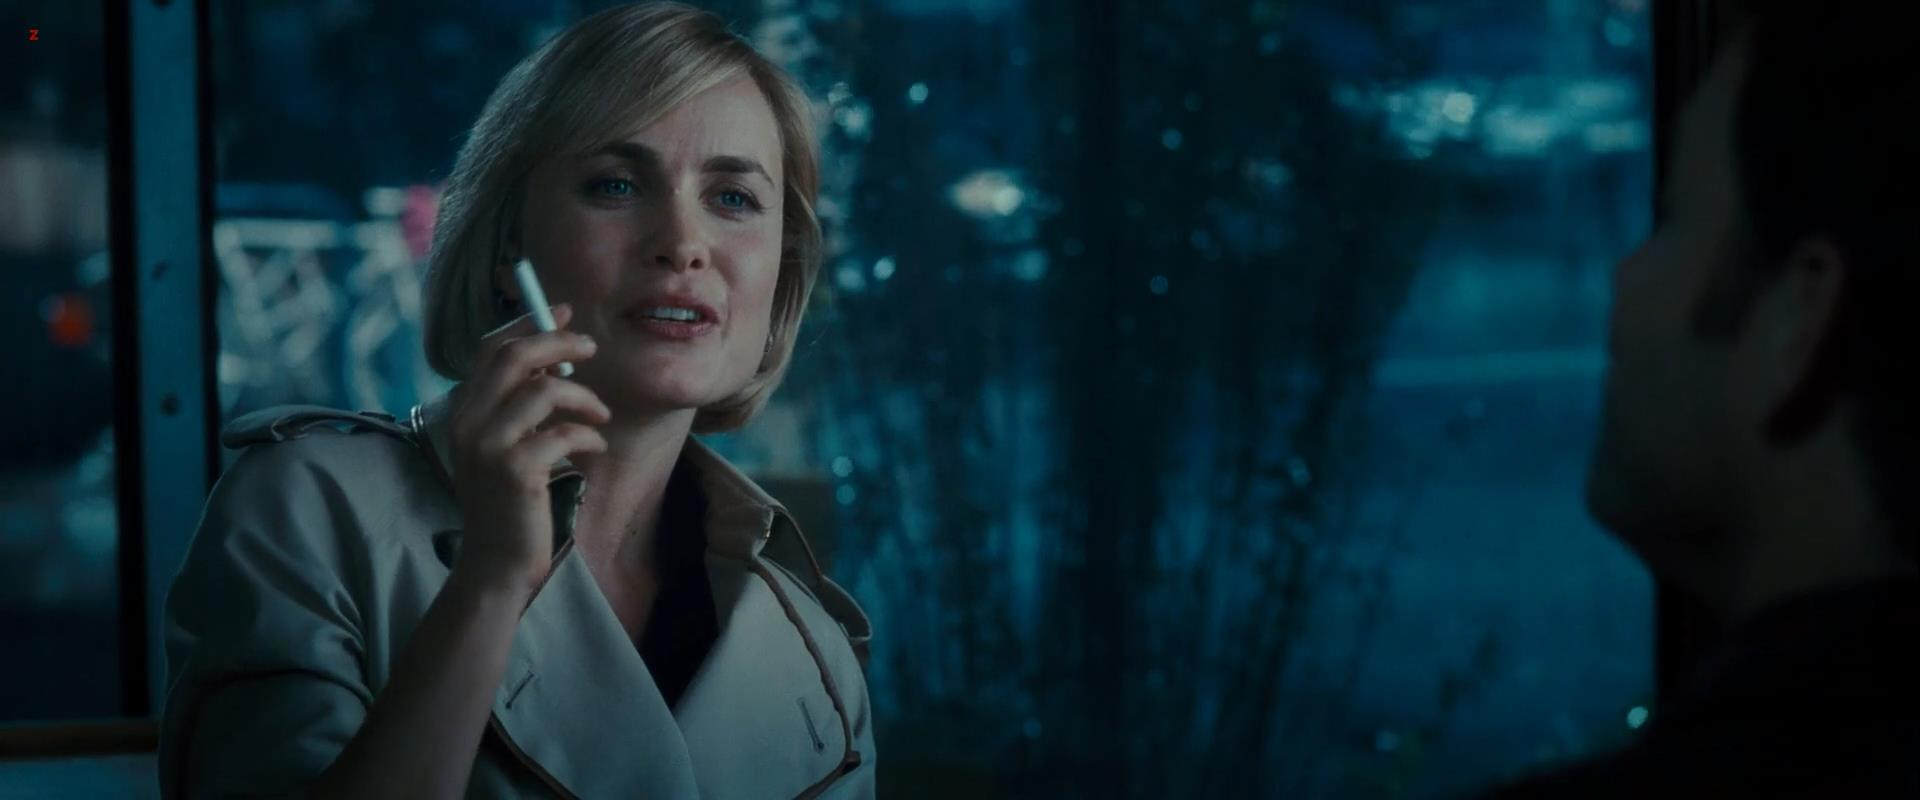 Are not radha mitchell upskirt Likely